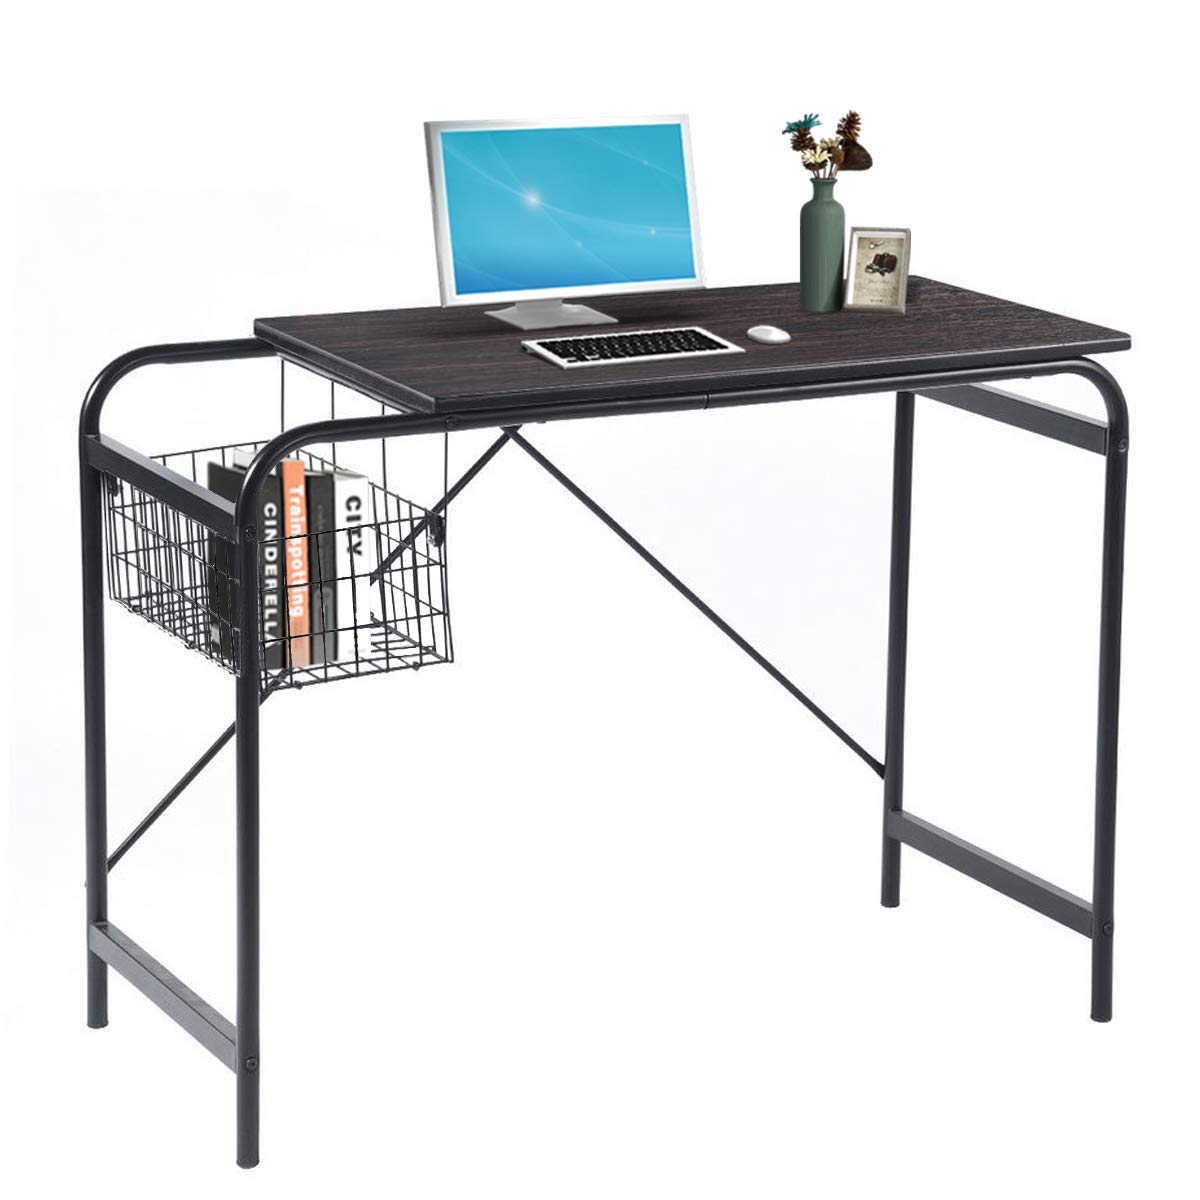 Computer Writing Desk with Metal Storage Basket Industrial Modern Simple Laptop Desk Wooden Study Workstation Space Saving Table Ideal for Home Office Dormitory Small Room or Corner, Walnut by Coavas